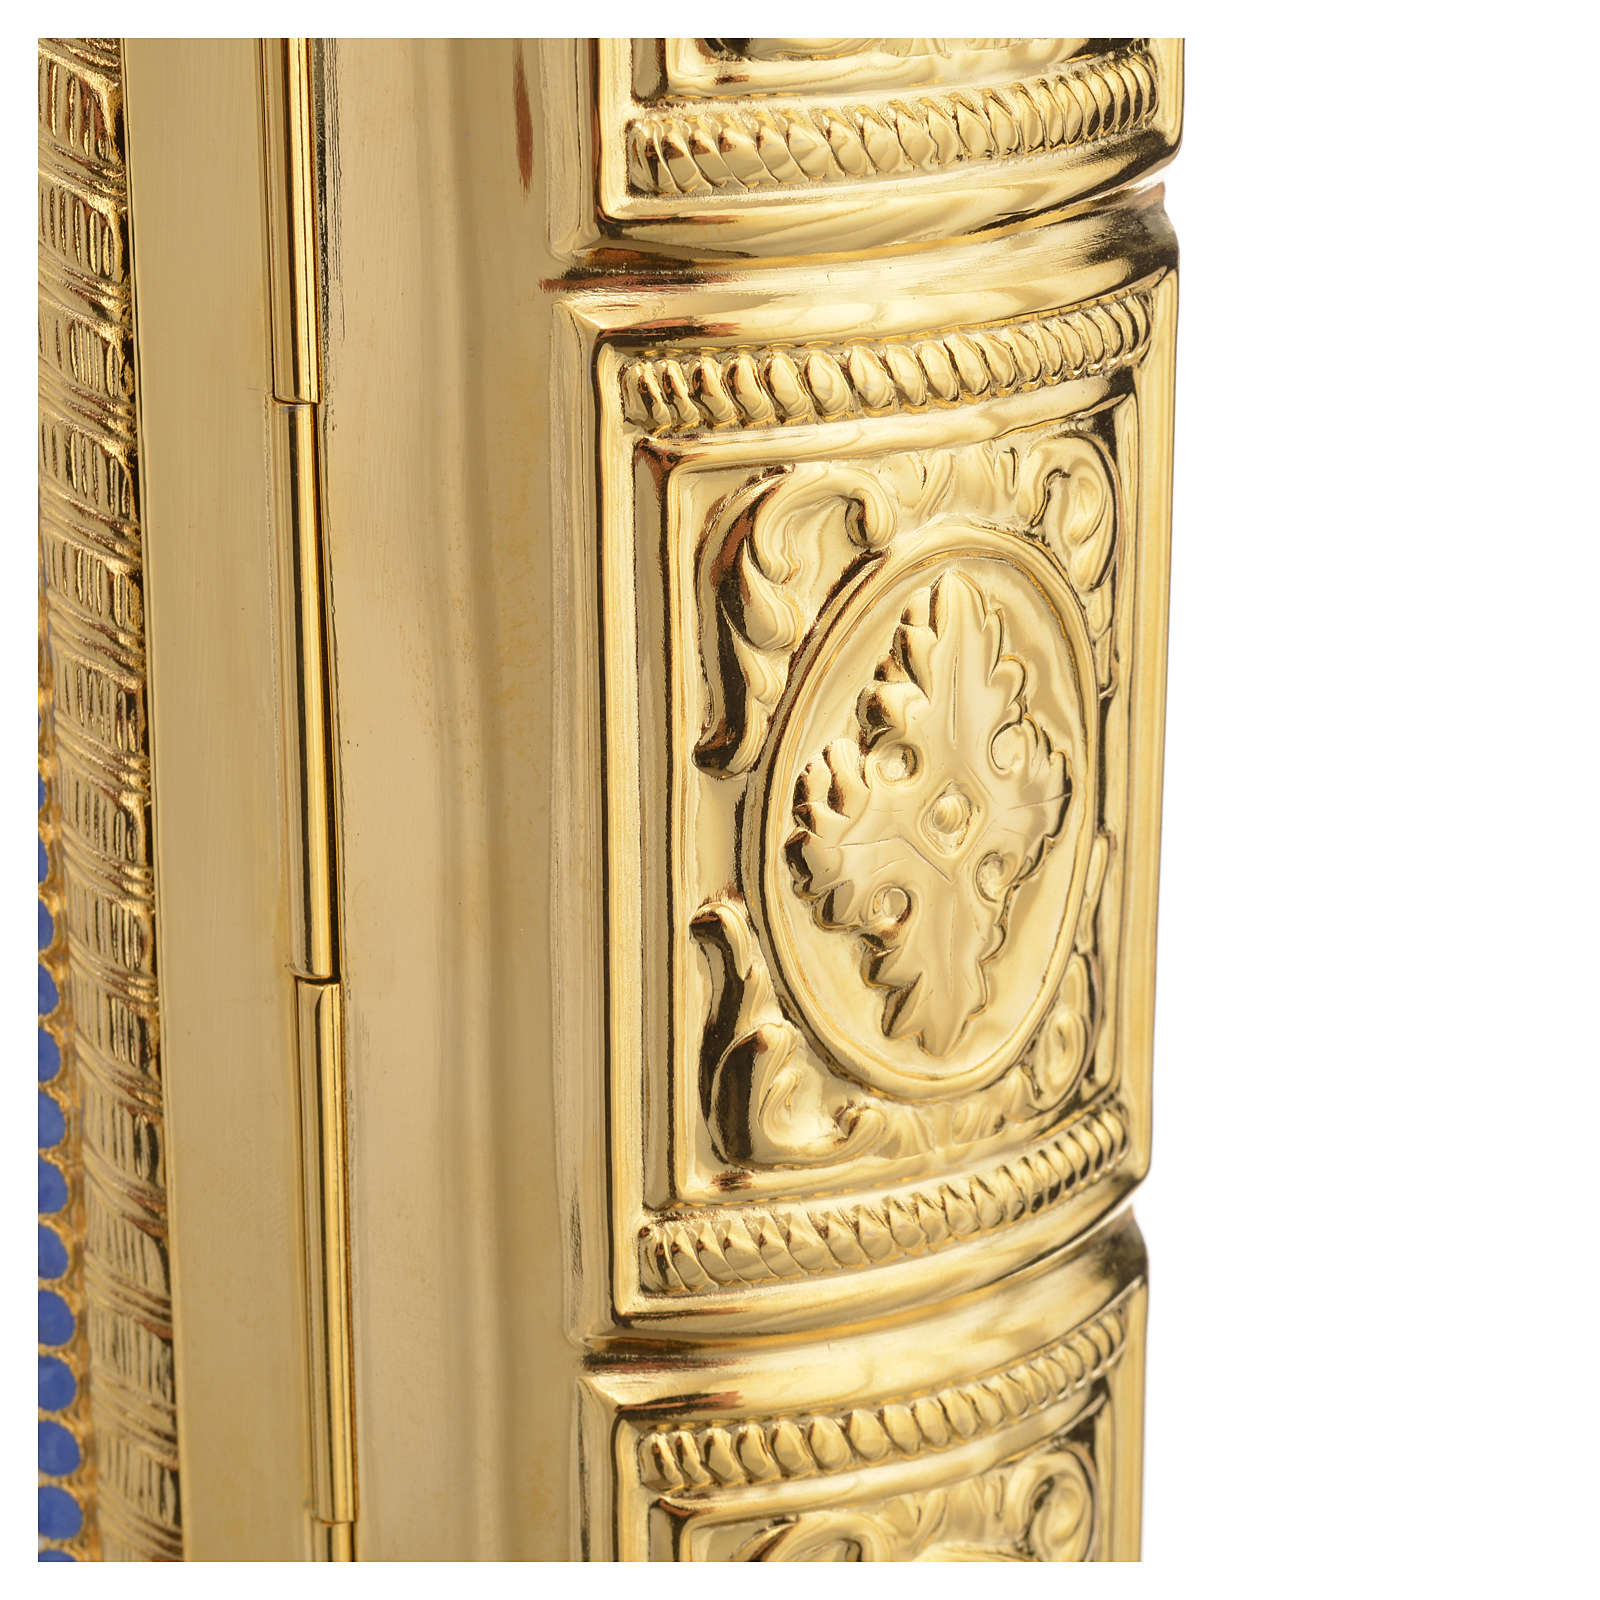 Lectionary cover in Gold Brass and Varnish with Jesus and the Evangelists images 4